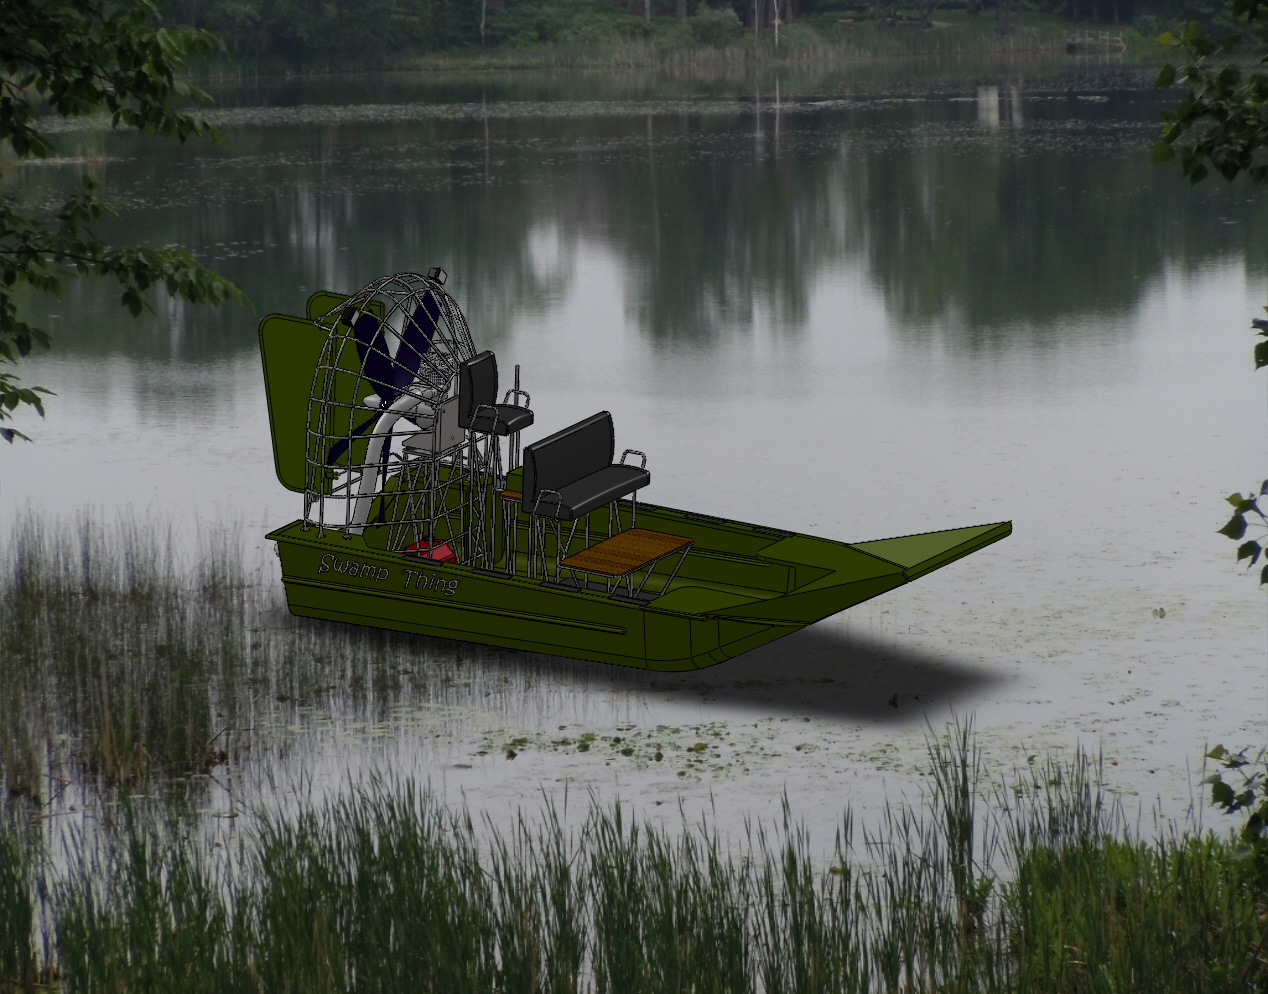 SolidWorks Air Boat Model, FEA Results, Video and Presentation